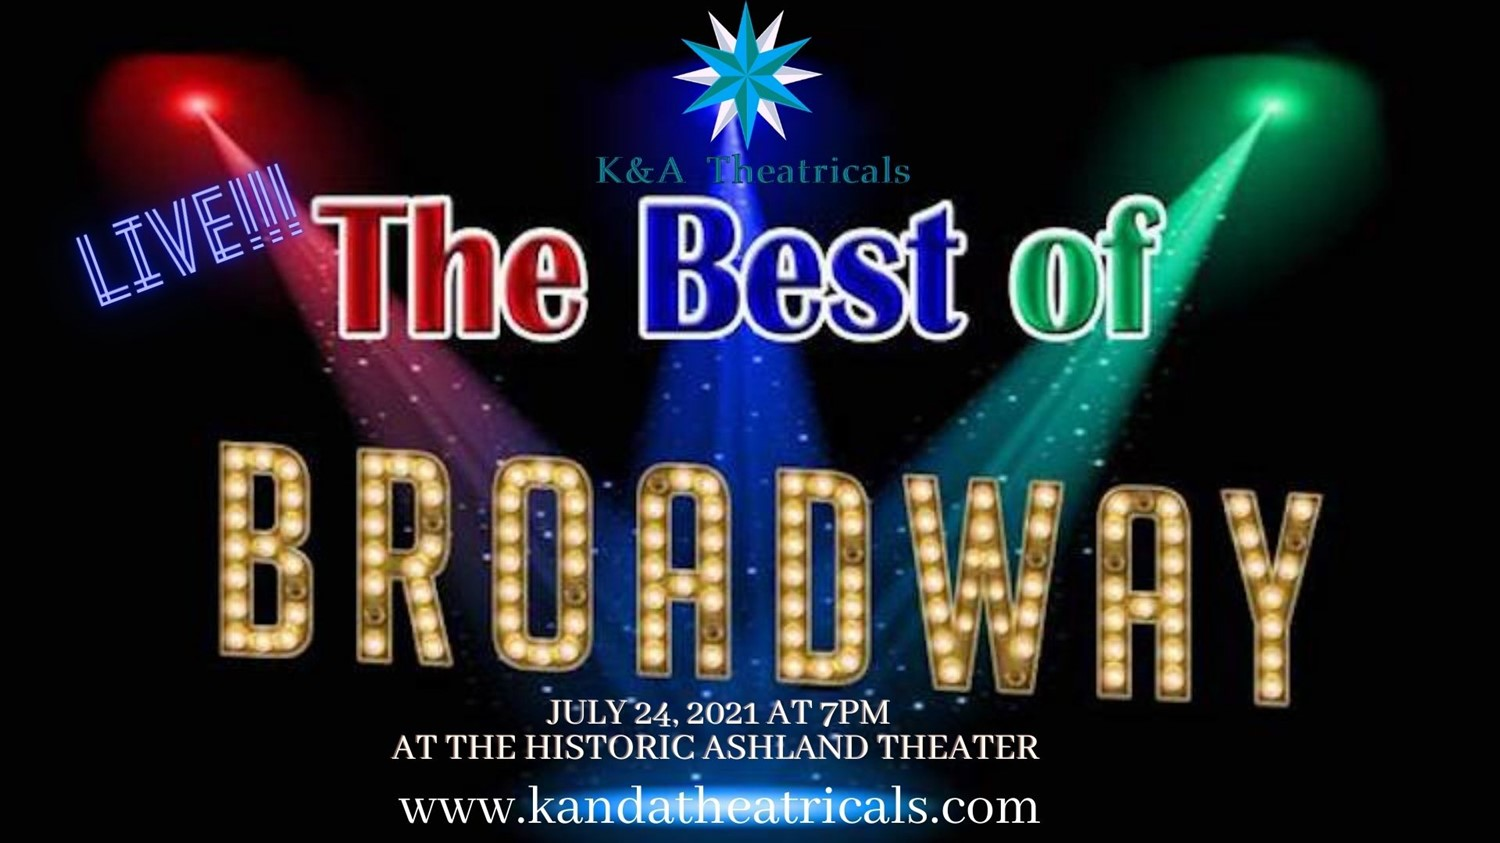 K&A Theatricals Presents Best of Broadway Live! A Benefit Showcase on Jul 24, 19:00@The Historic Ashland Theater - Pick a seat, Buy tickets and Get information on Www.kandatheatricals.com